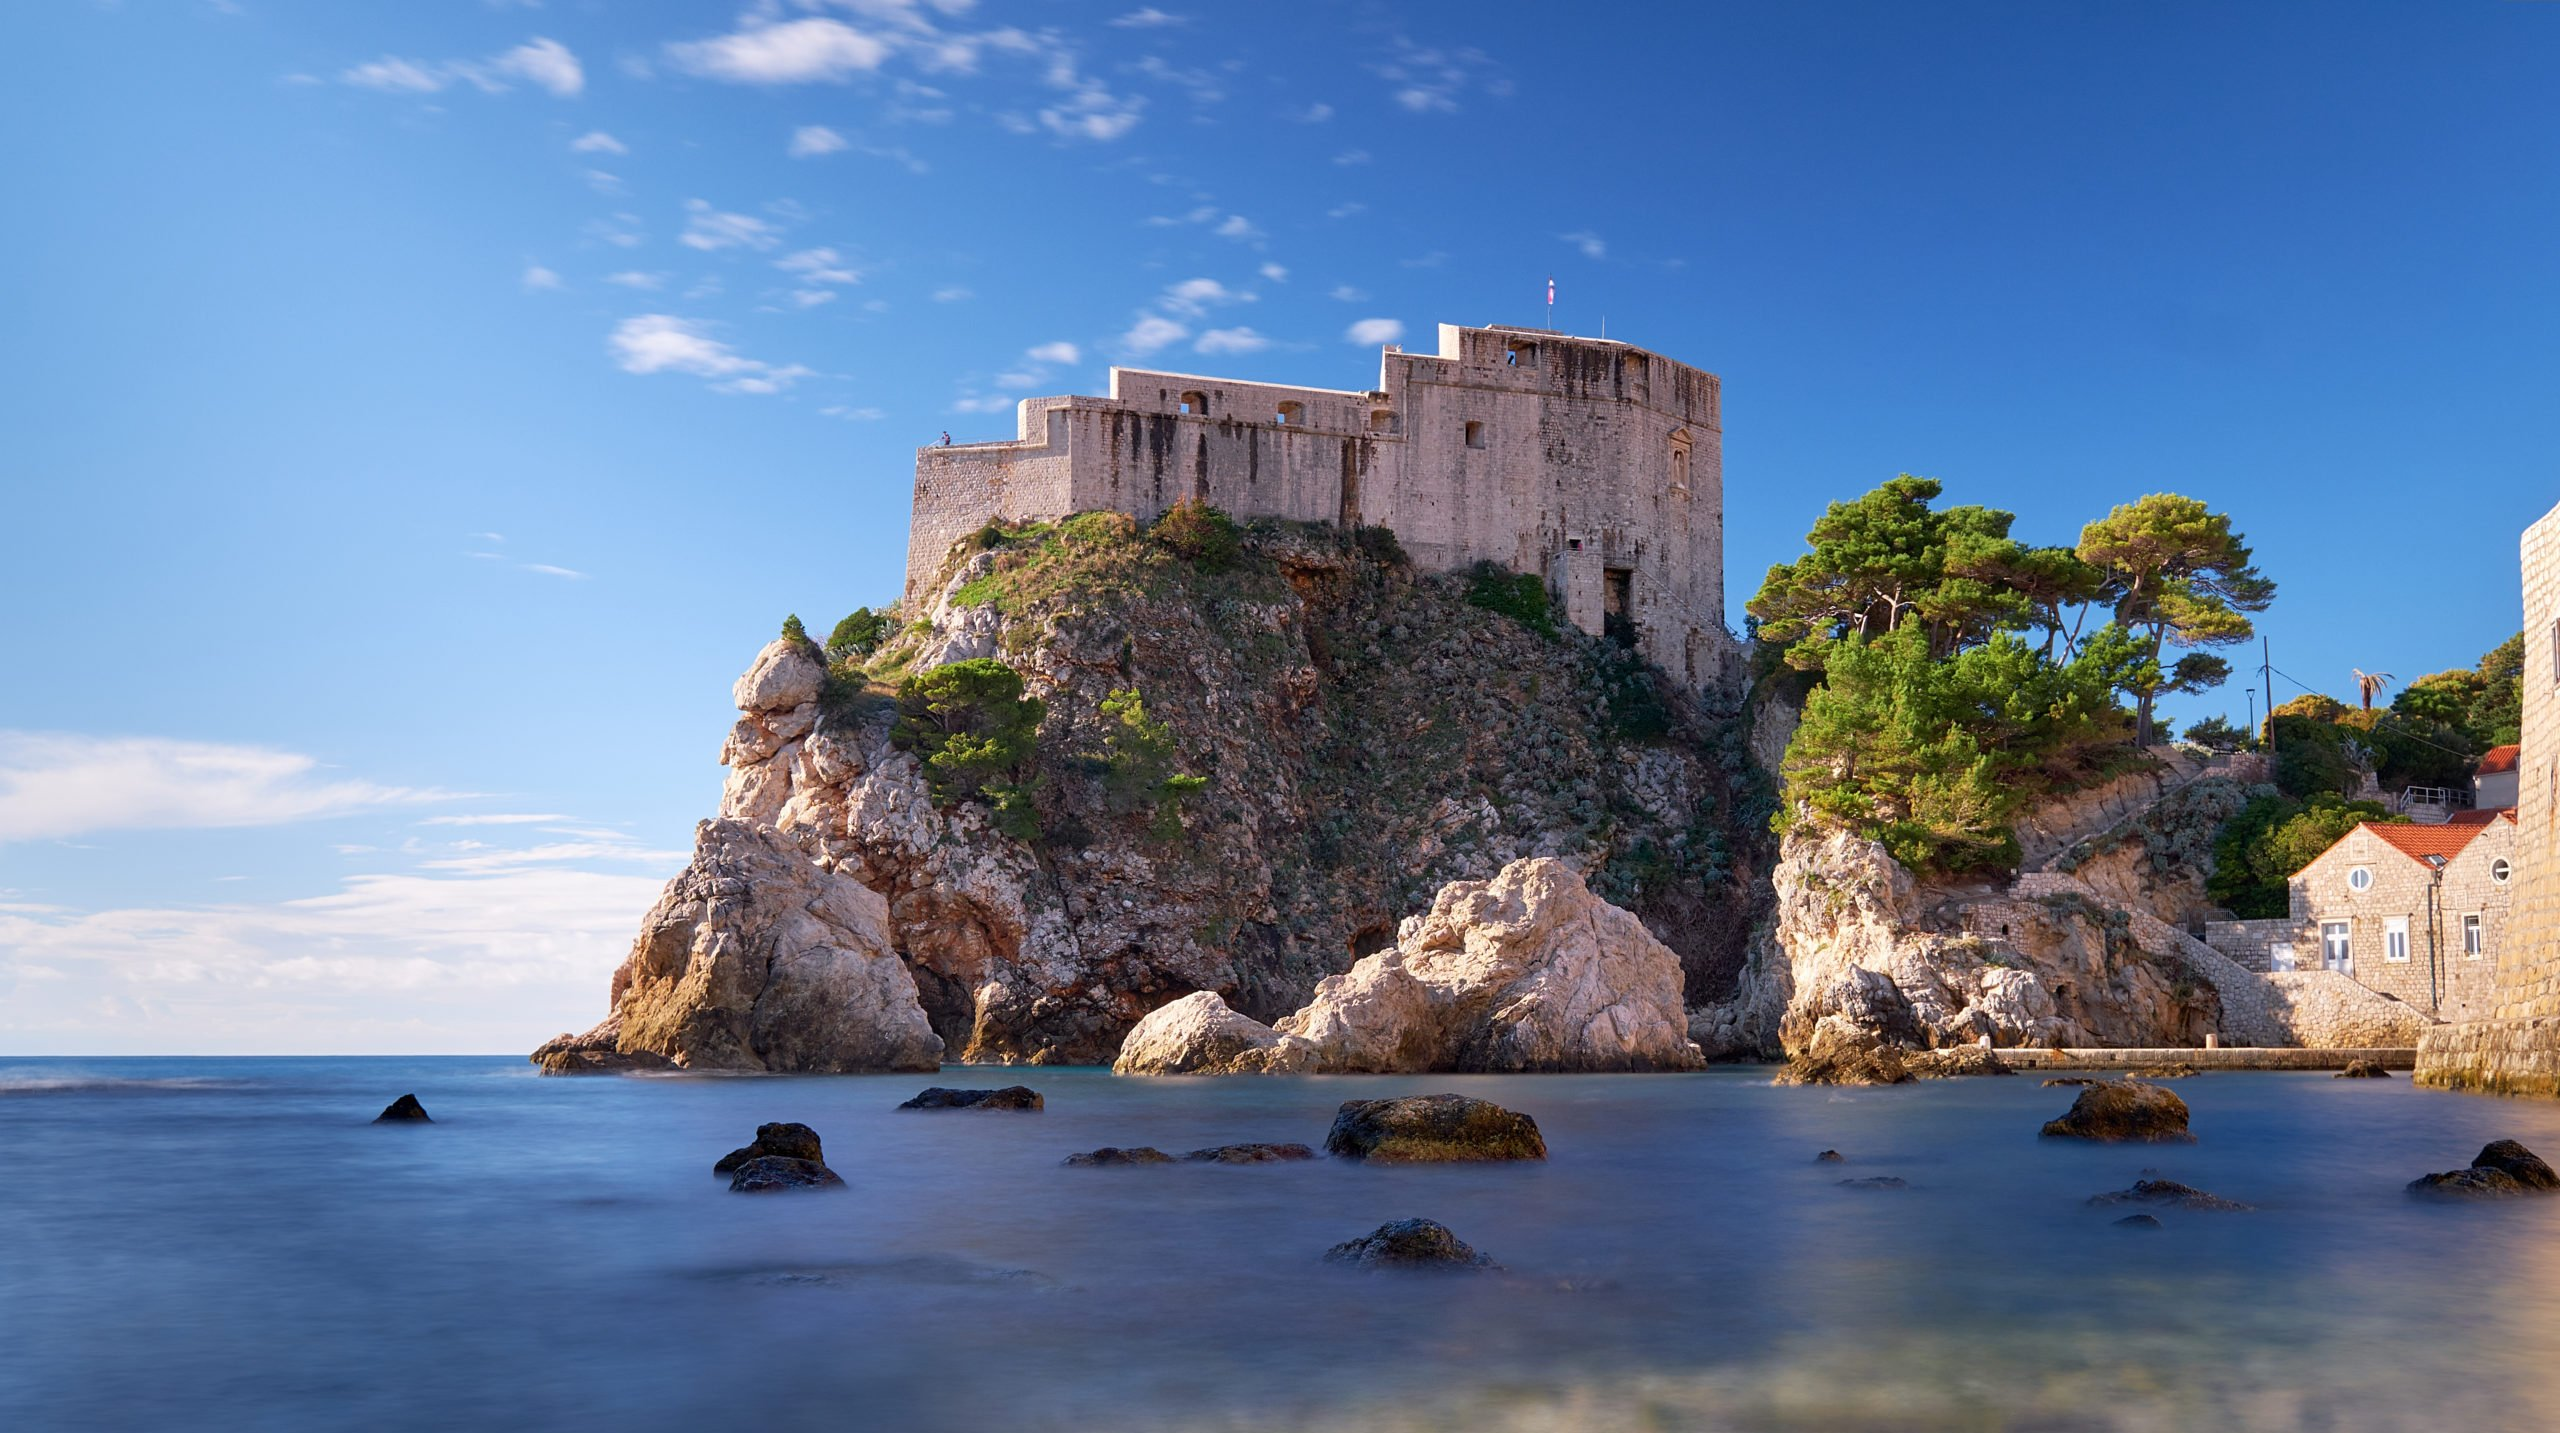 Visit Lovrijenac Fortress- The Got Film Location Of The Red Keep During The Game Of Thrones And Dubrovnik Shore Tour